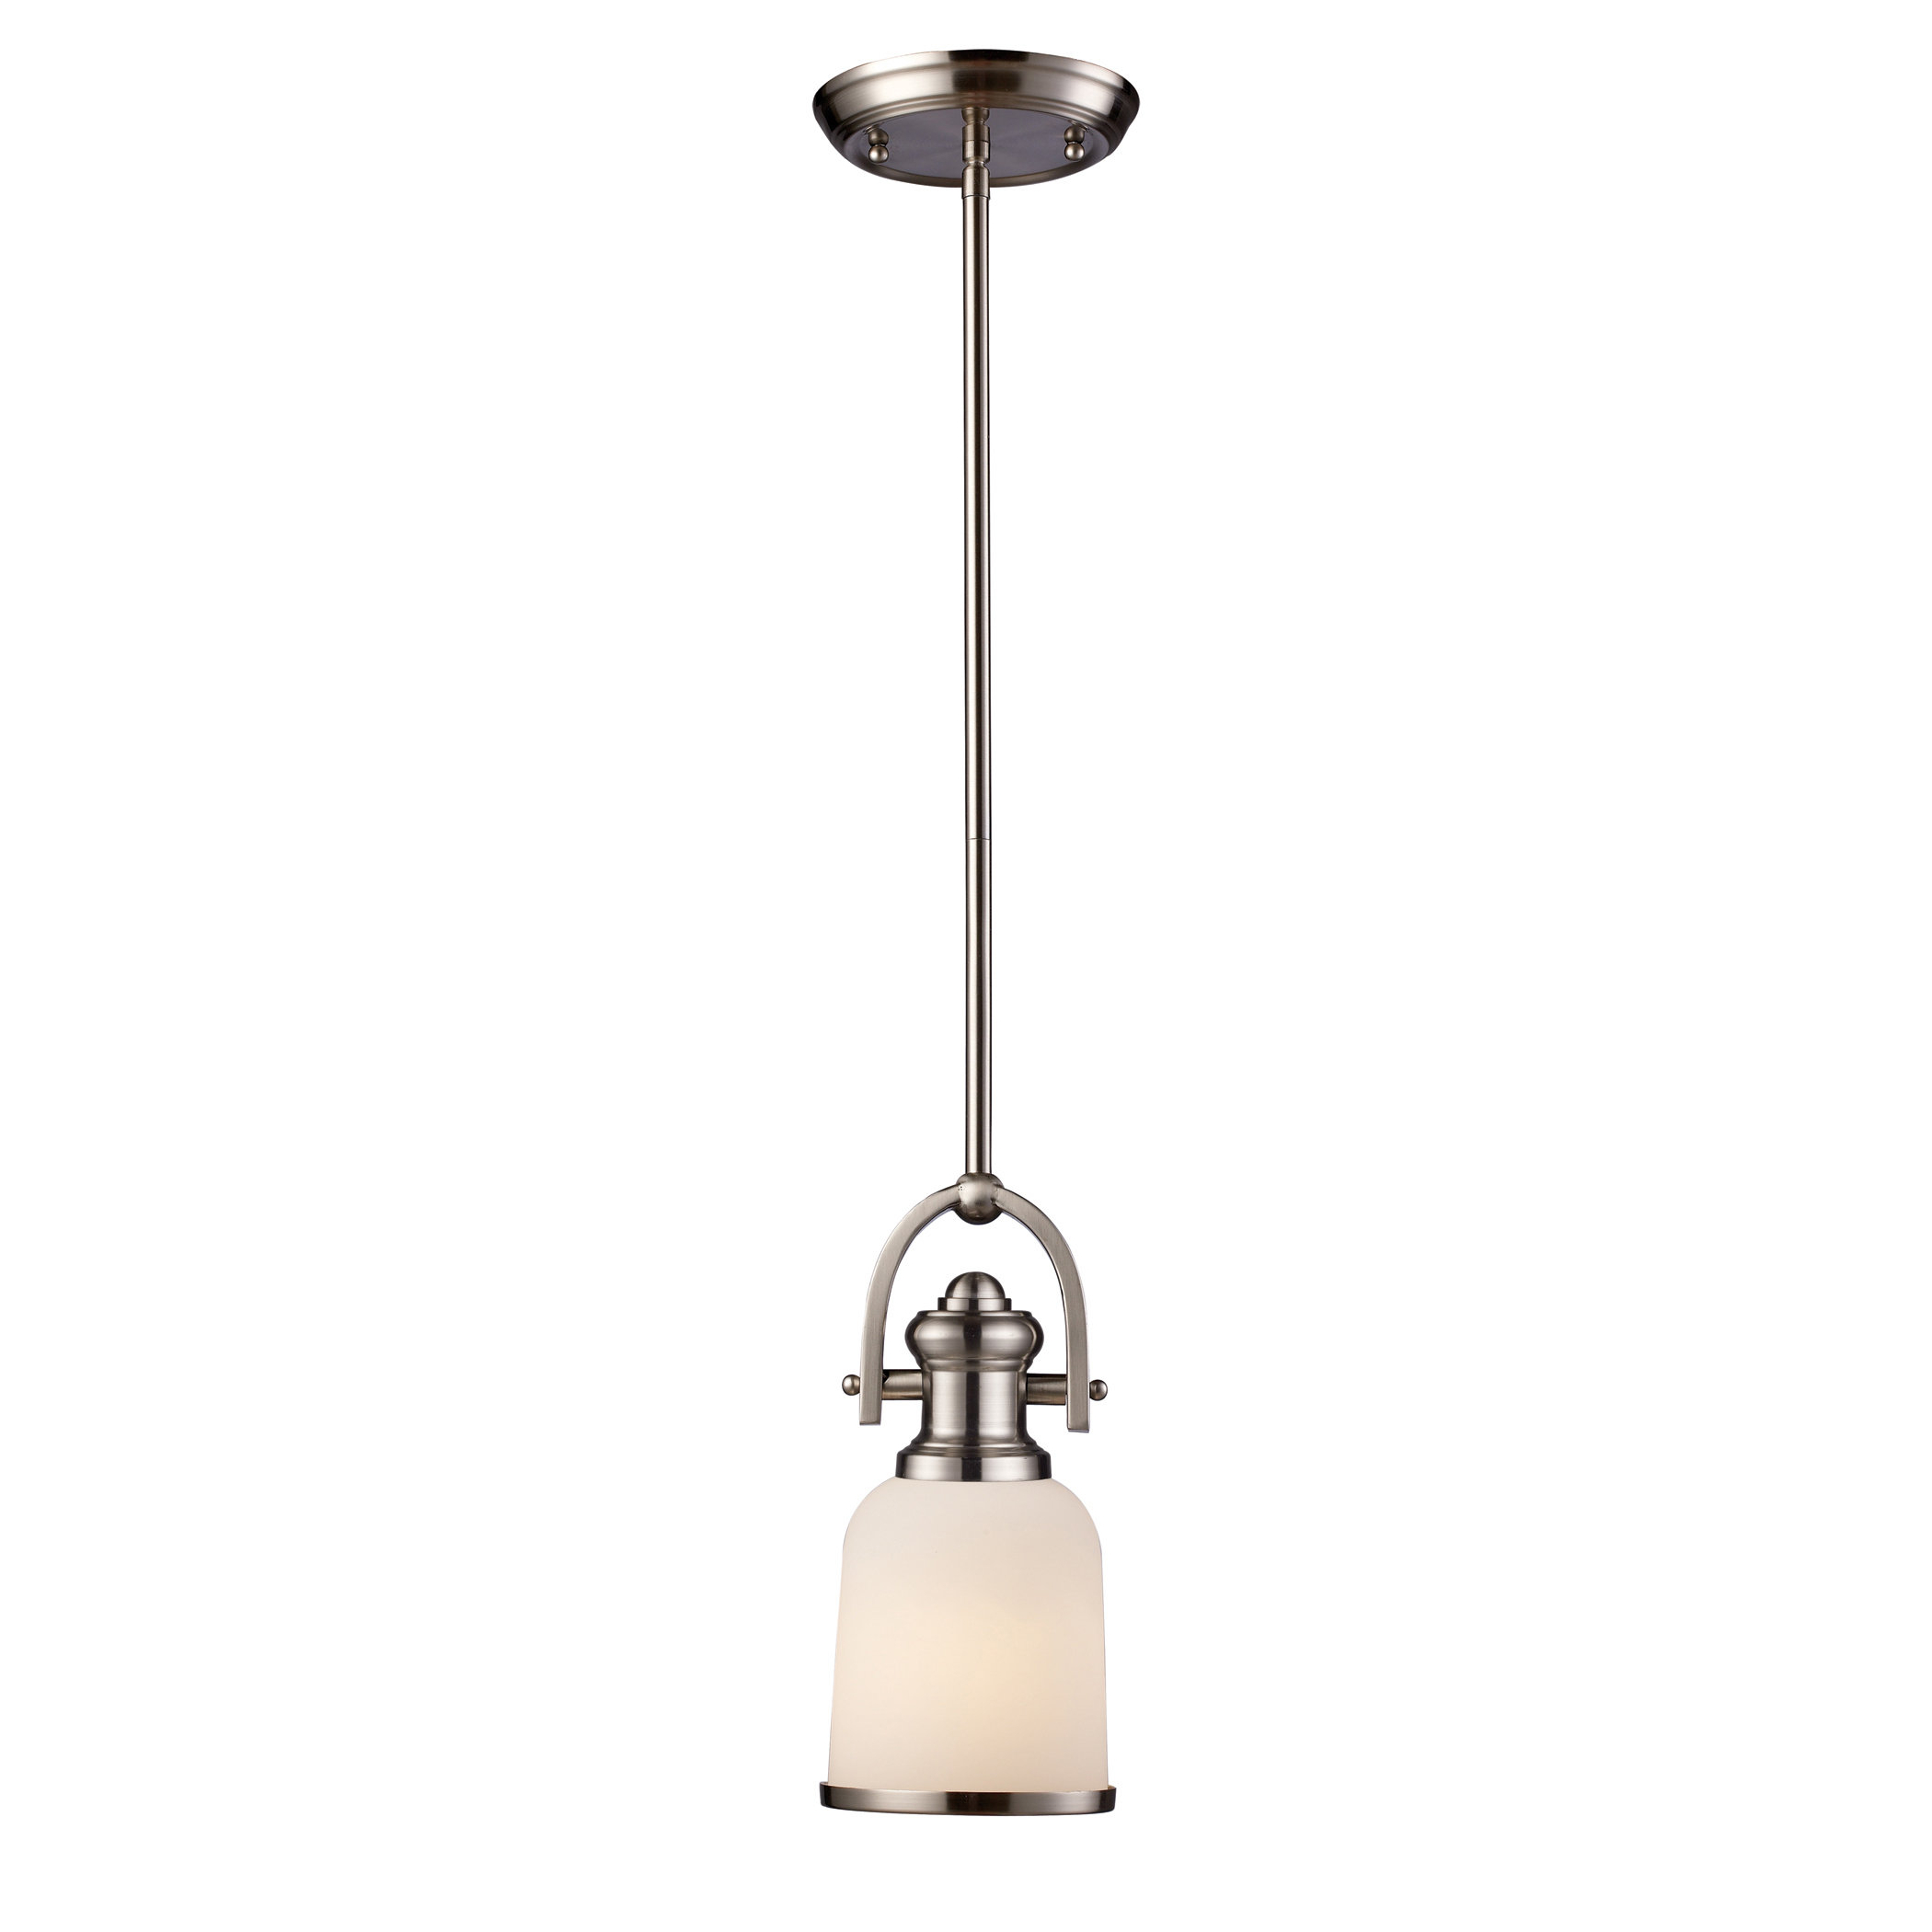 Boornazian 1-Light Cone Pendant with Trendy Grullon Scroll 1-Light Single Bell Pendants